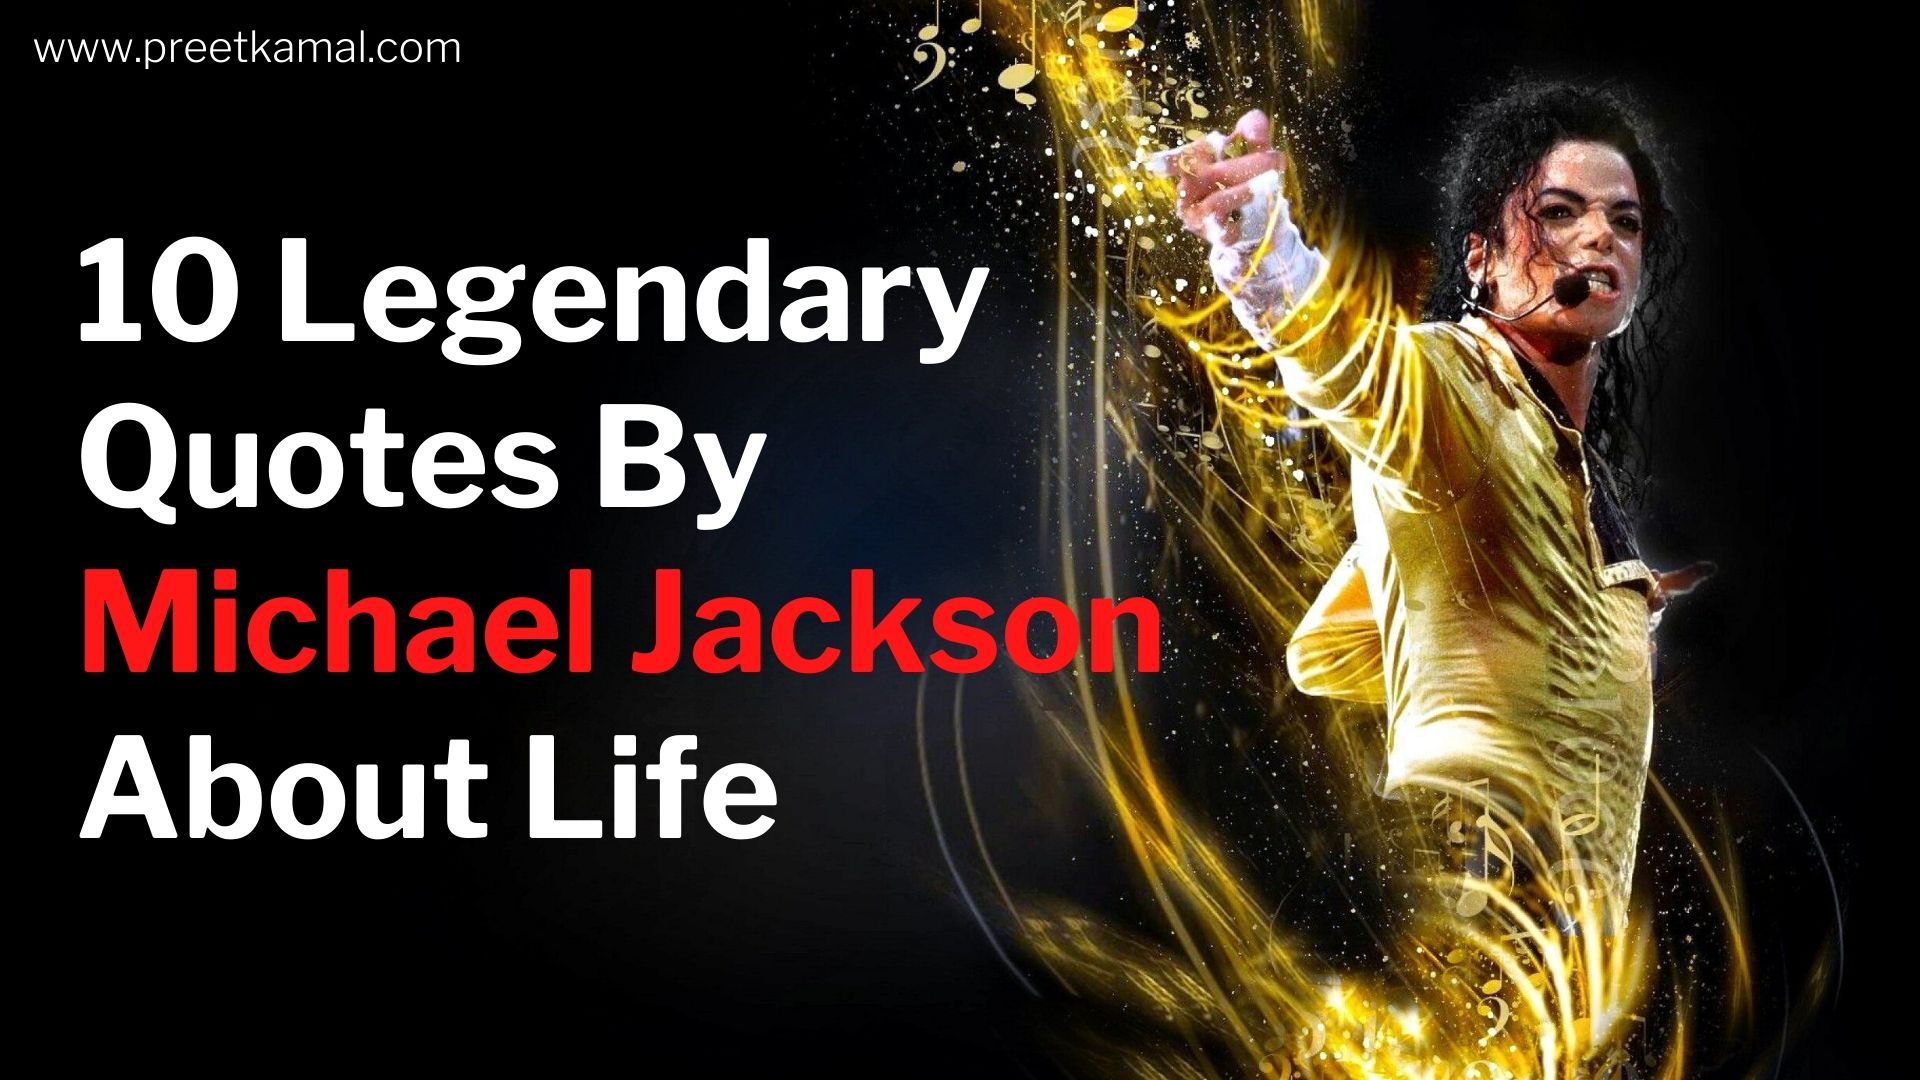 10 Legendary Quotes By Michael Jackson About Life